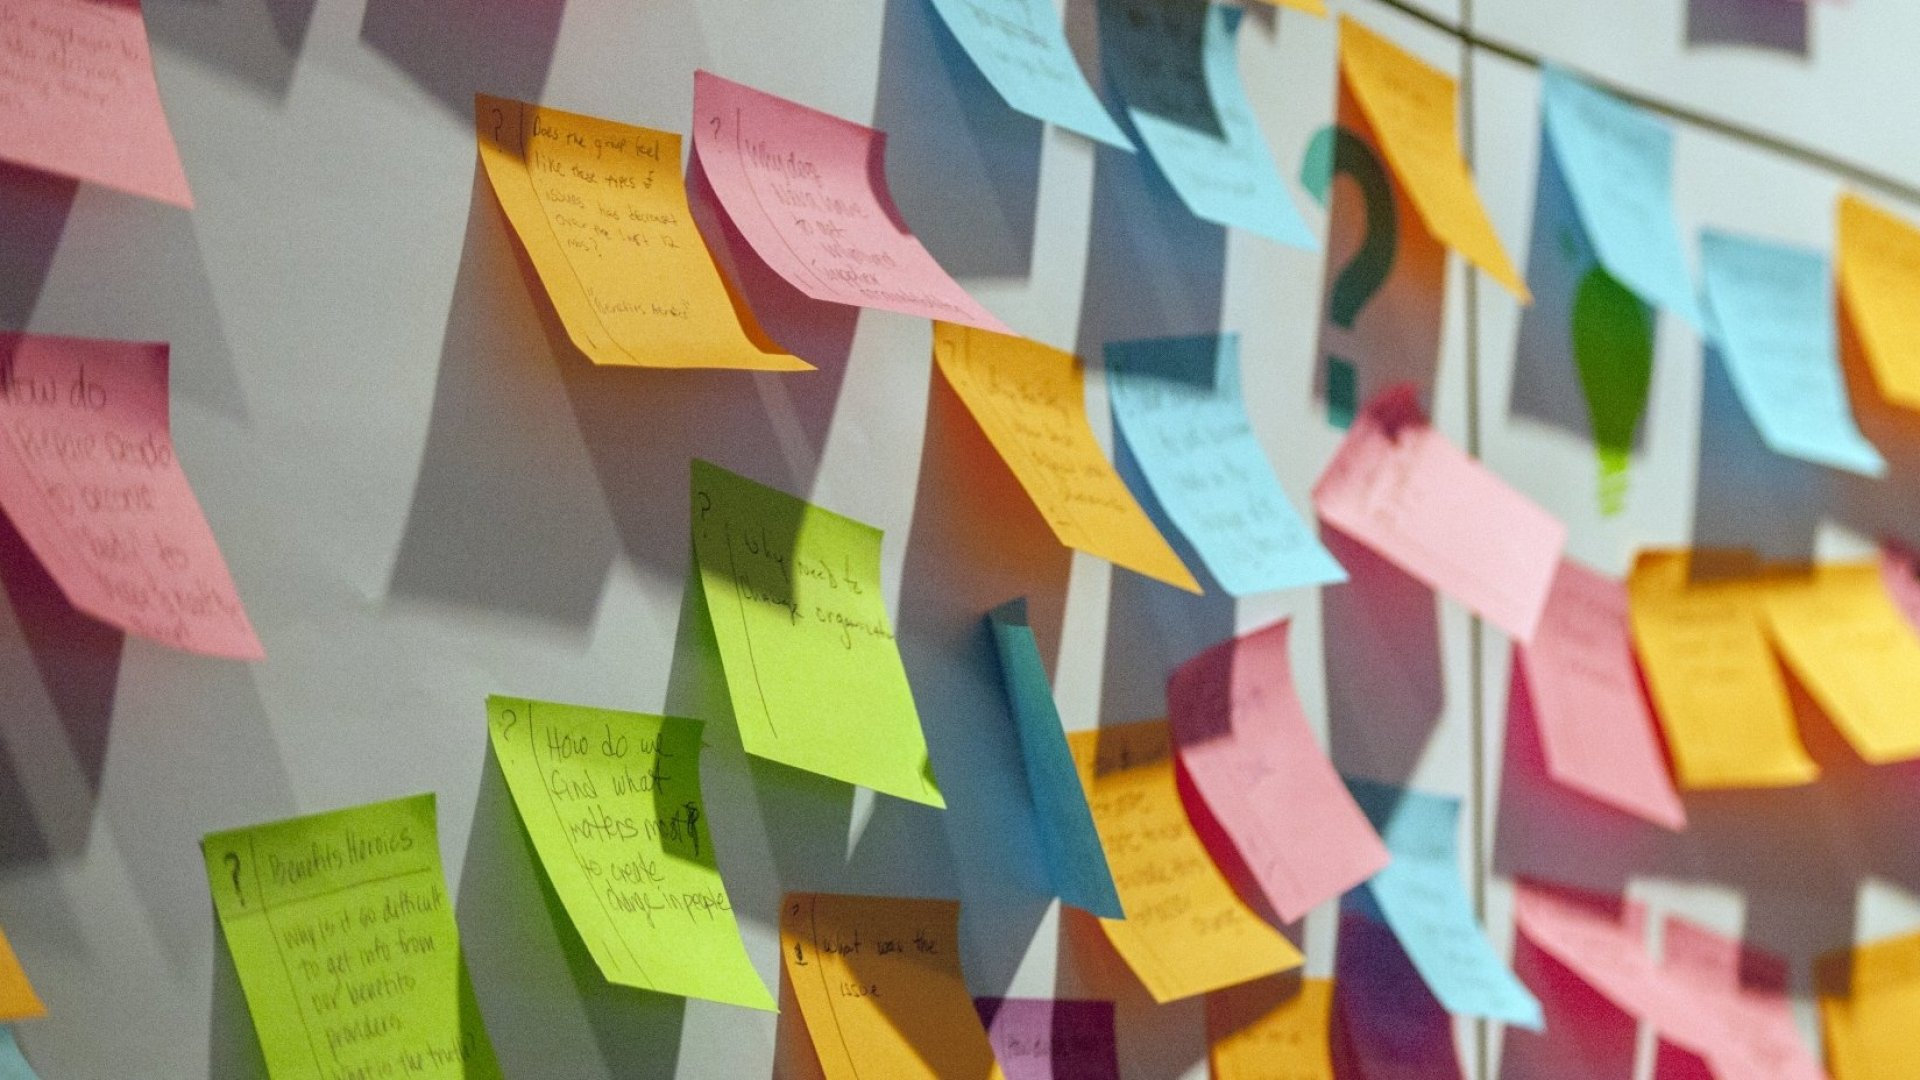 The 3 People You Need in the Room for a Successful Brainstorming Session